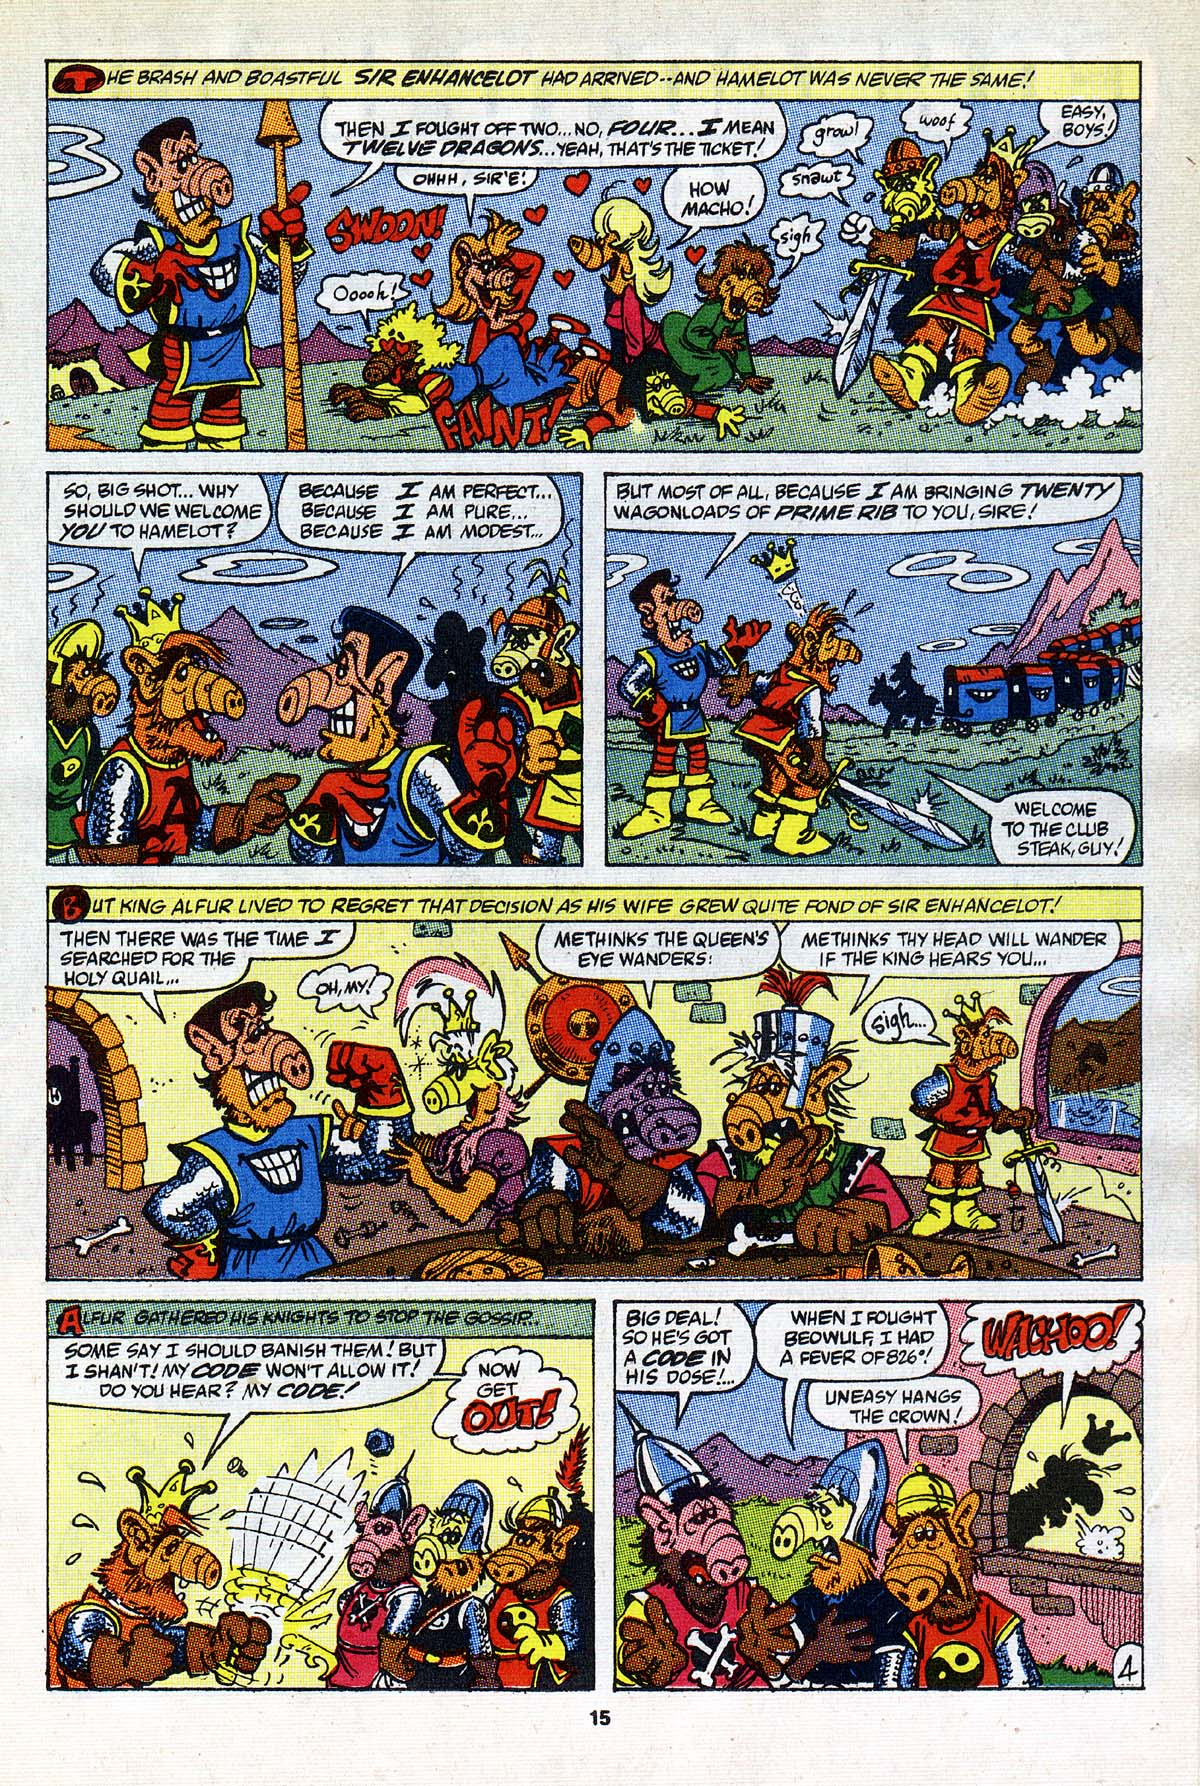 Read online ALF comic -  Issue #26 - 14